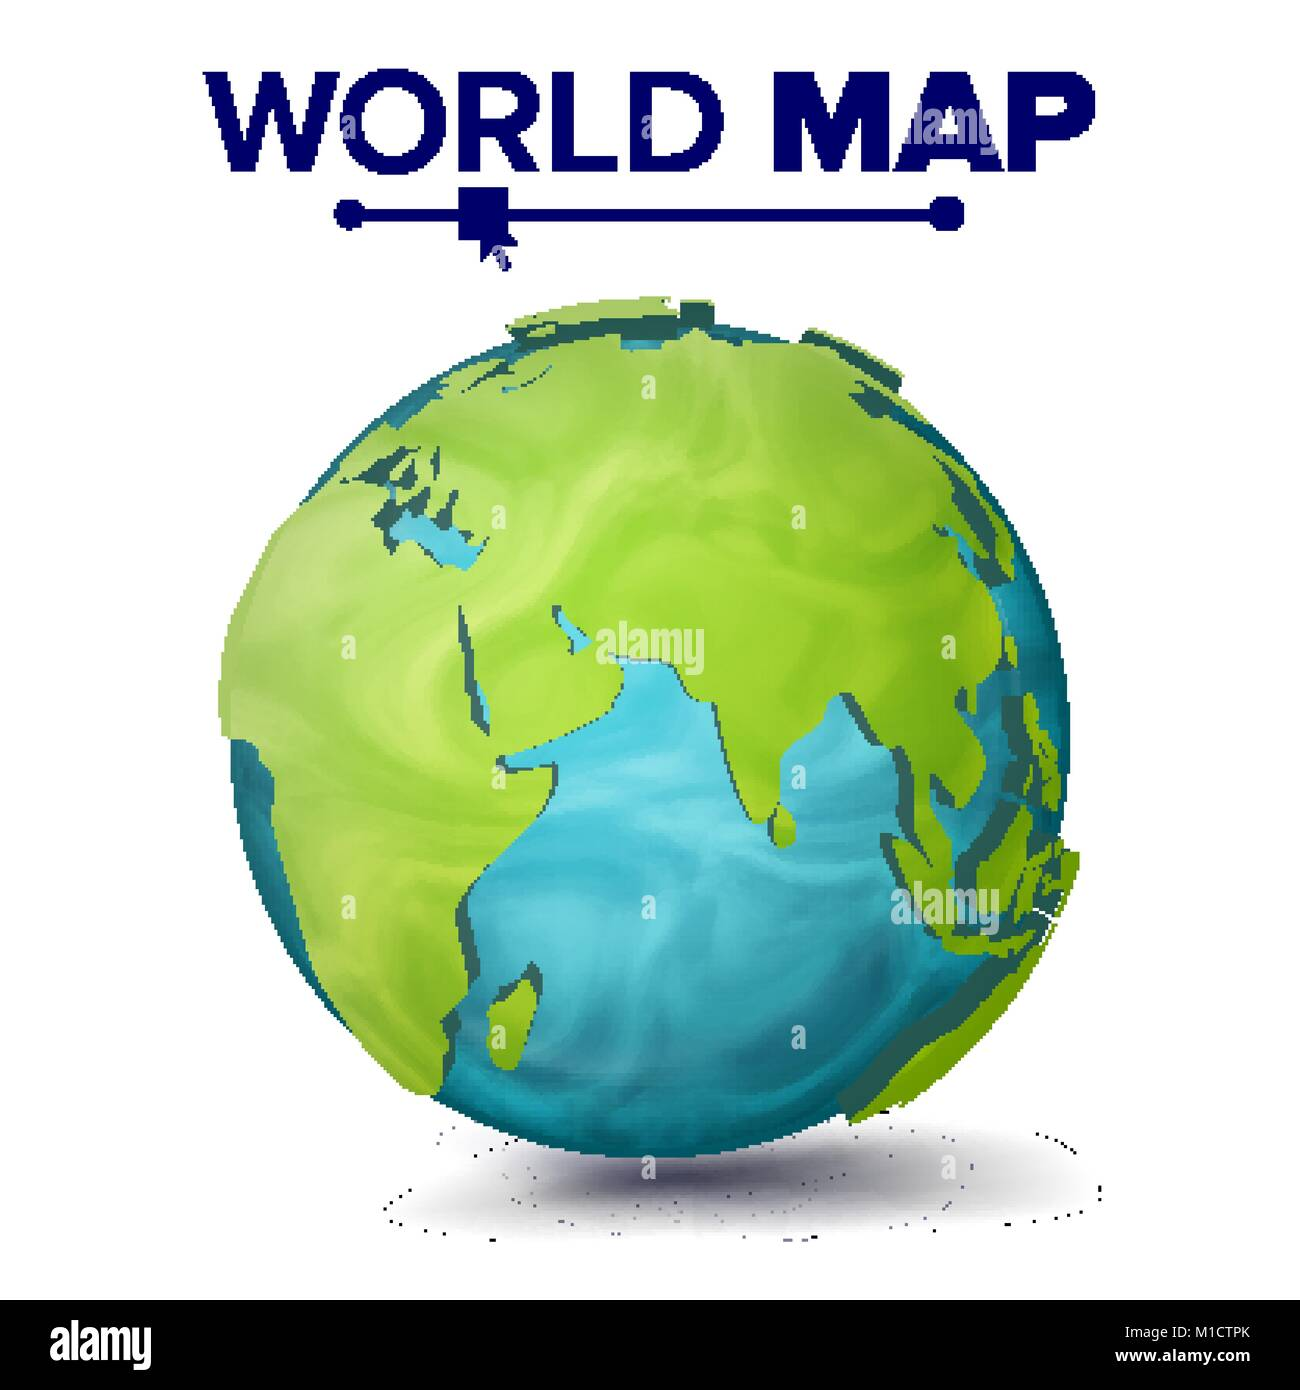 World Map Vector. 3d Planet Sphere. Earth With Continents. Eurasia, Australia, Africa. Isolated Illustration - Stock Image